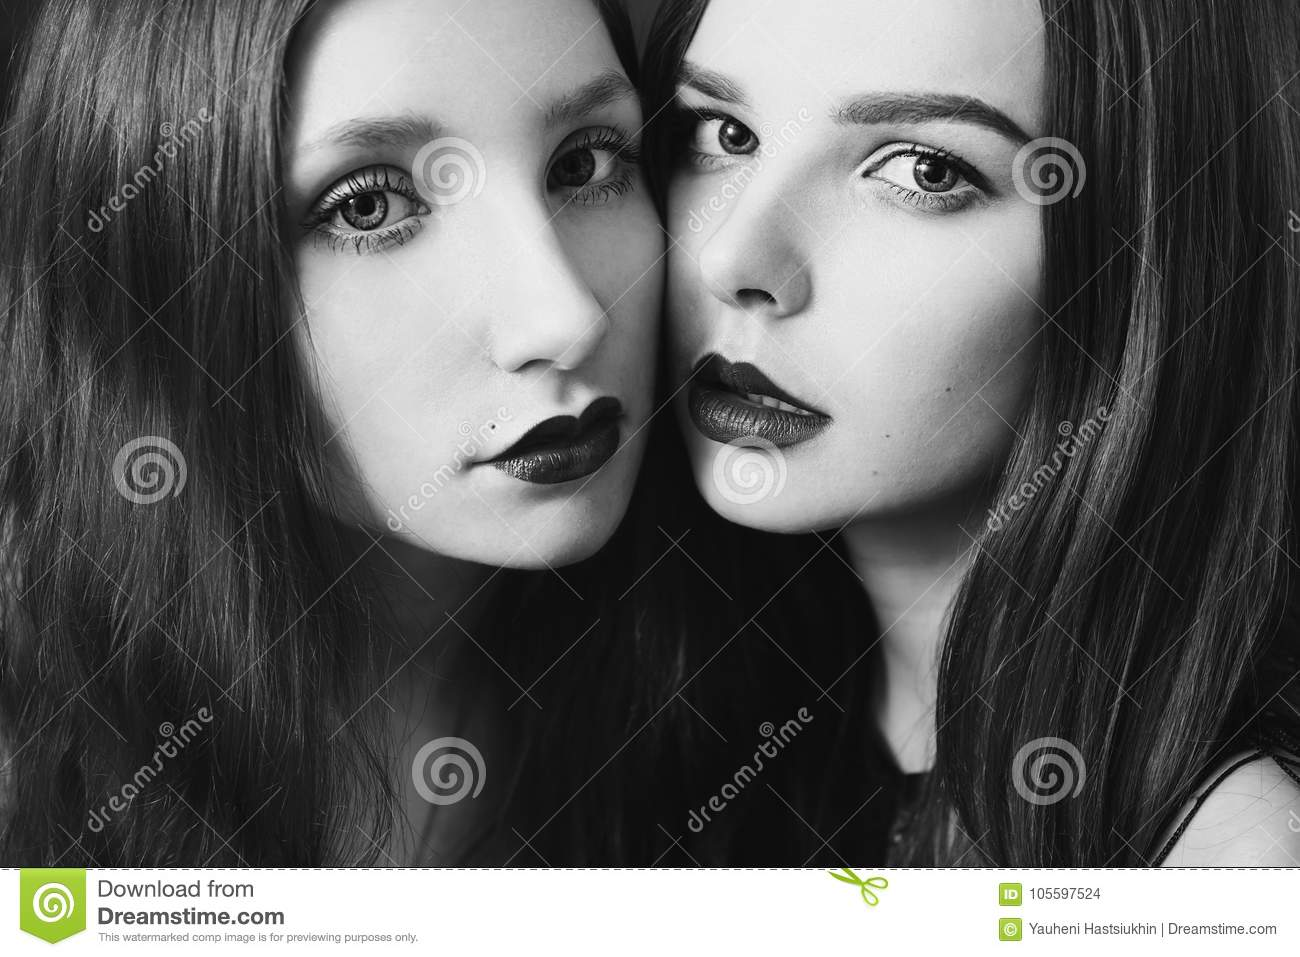 Lesbian black and white photography